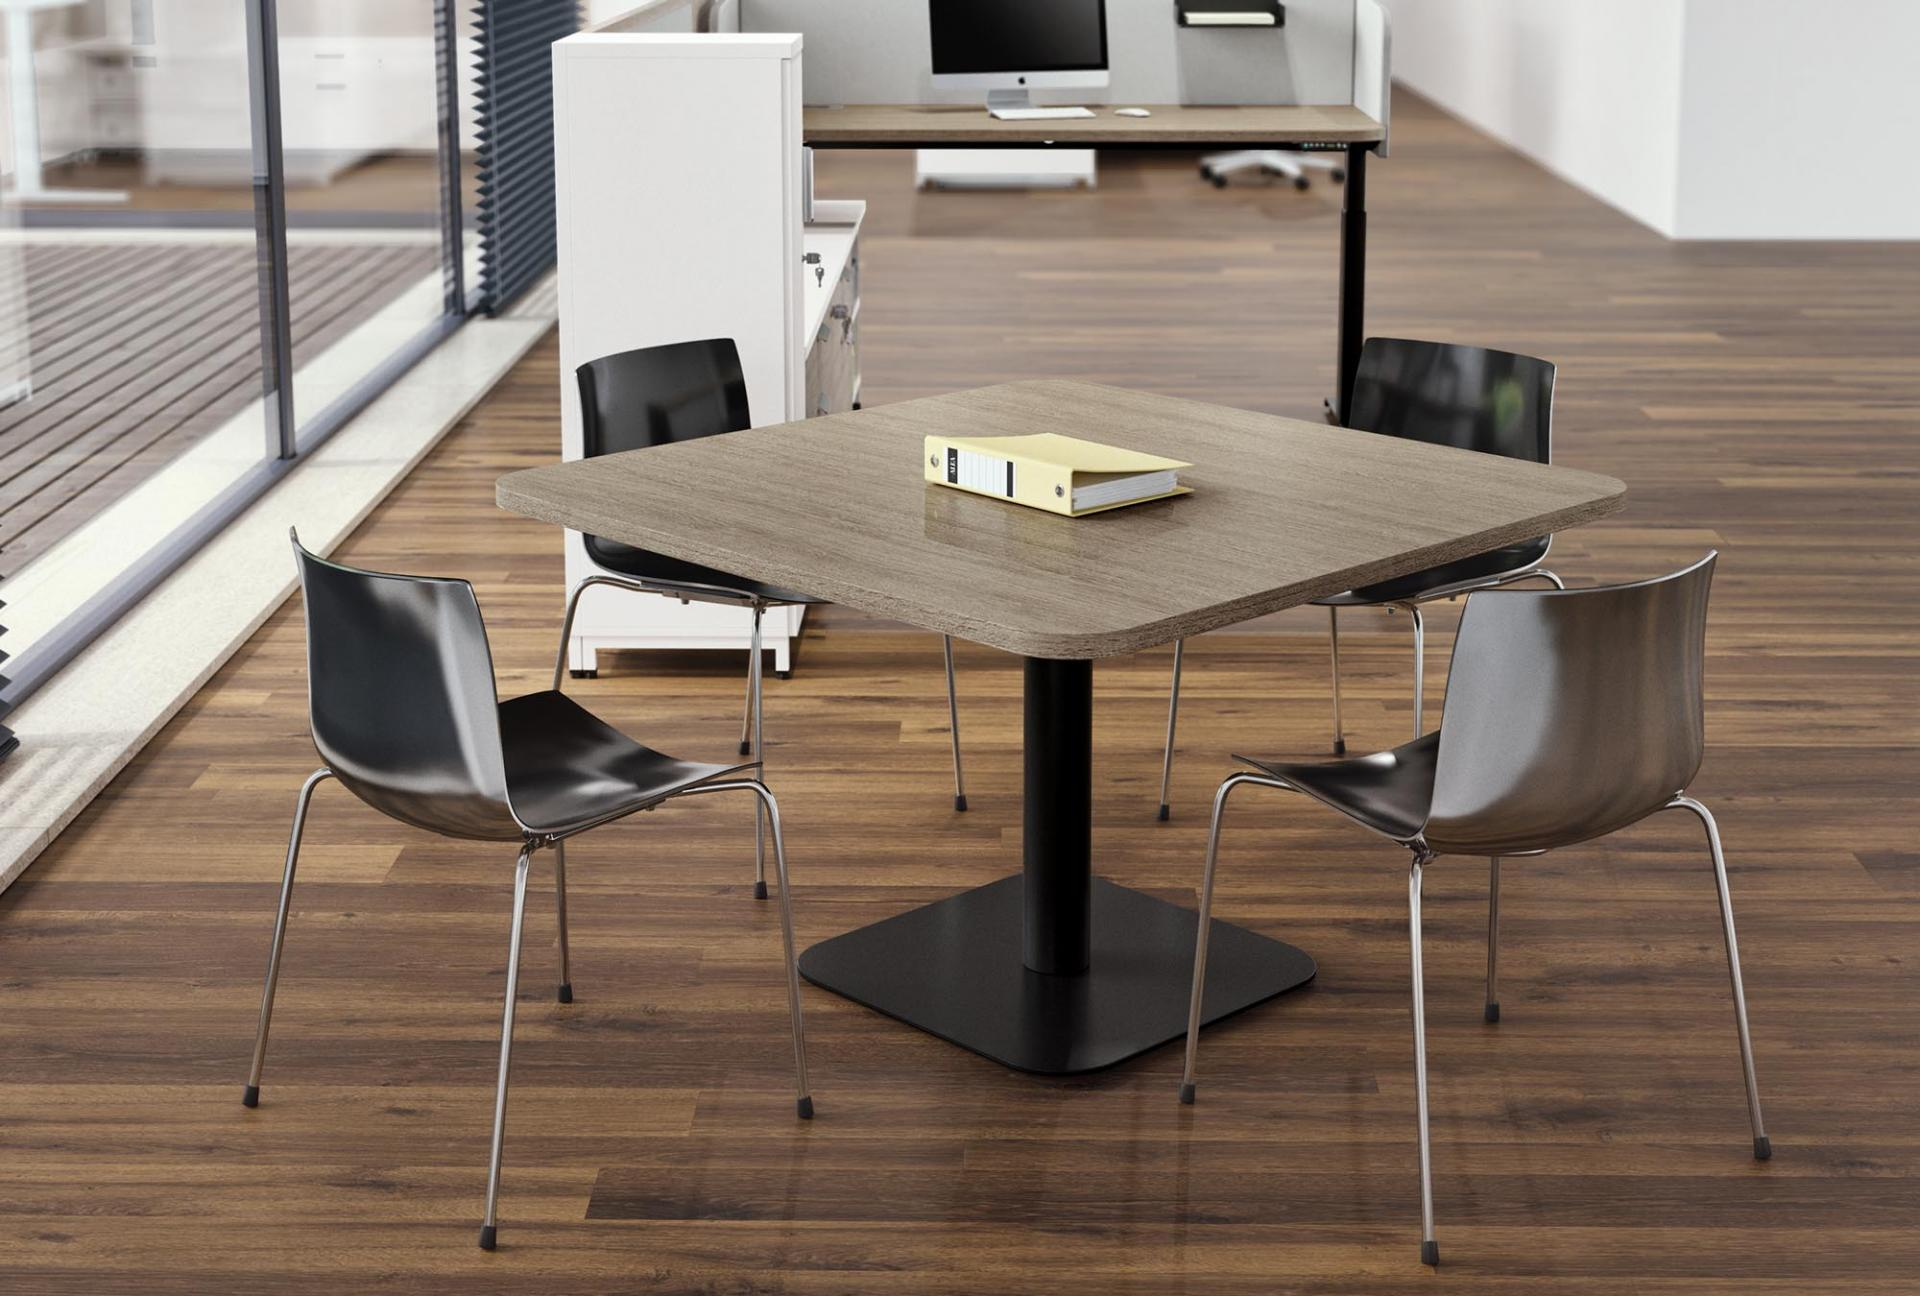 Tables with metal base dettaglio